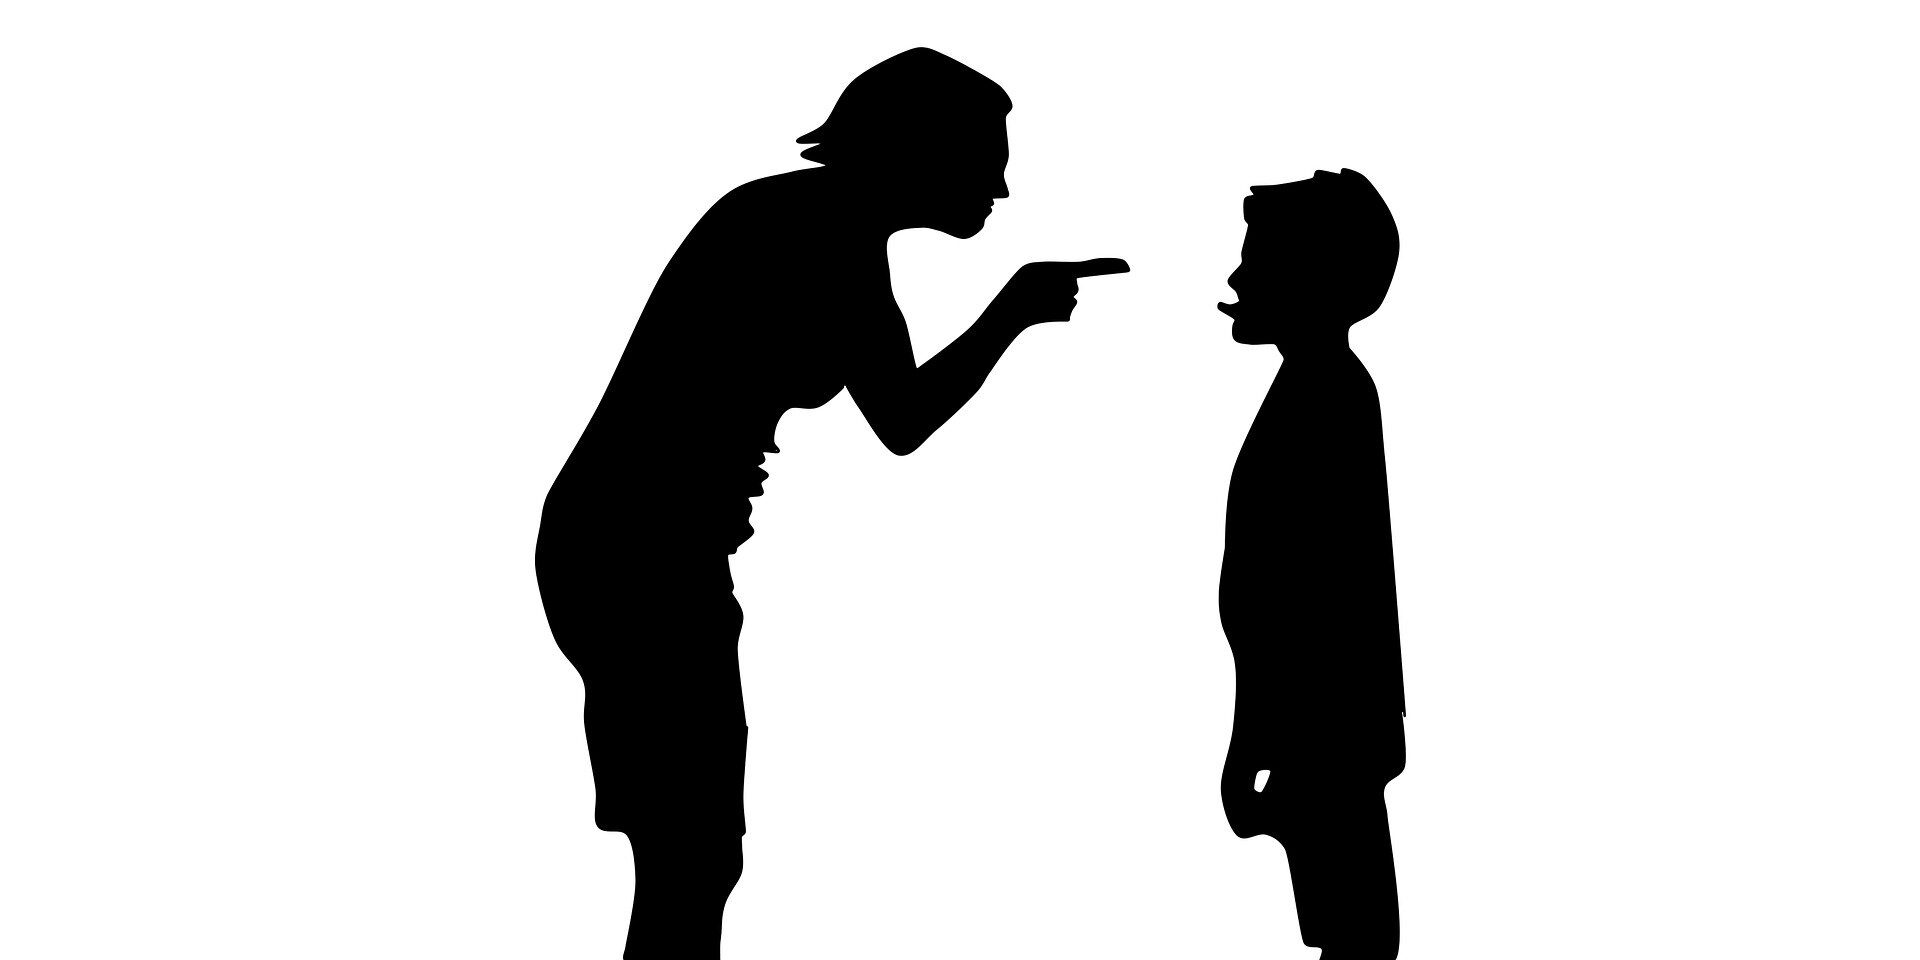 Do children view punishment as rehabilitative? A new study takes a look